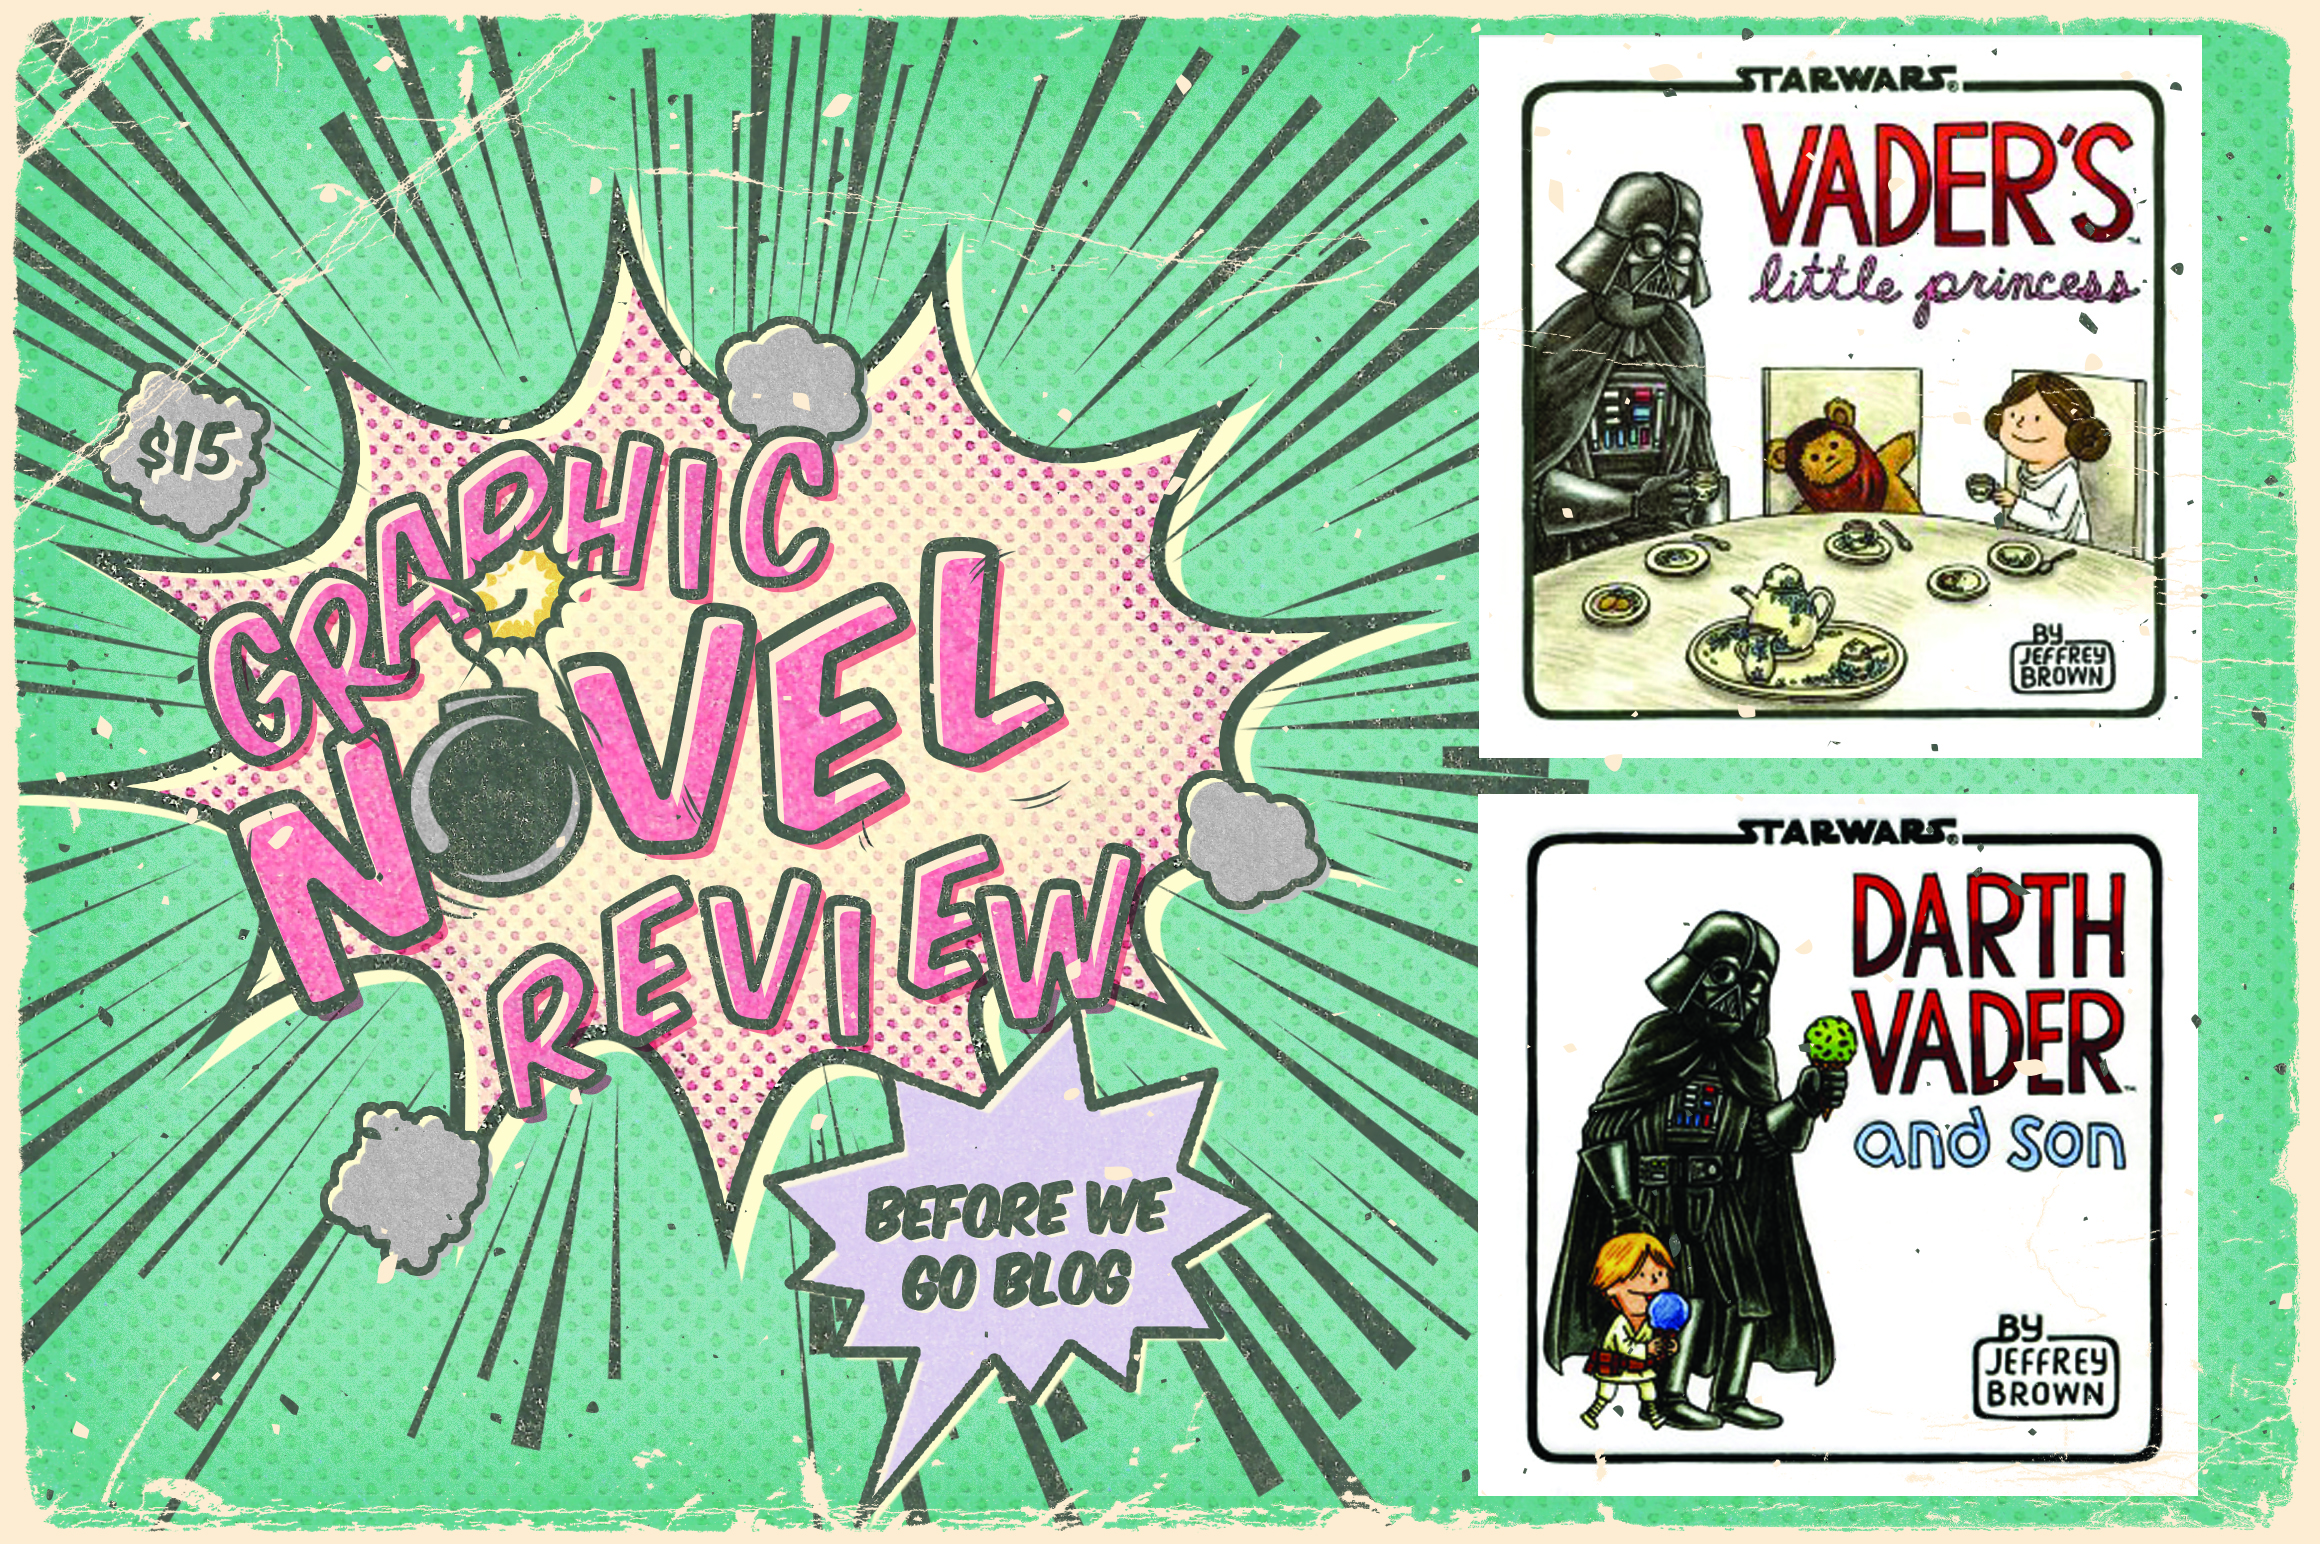 Review Of Vader S Little Princess And Darth Vader And Son By Jeffrey Brown Beforewegoblog